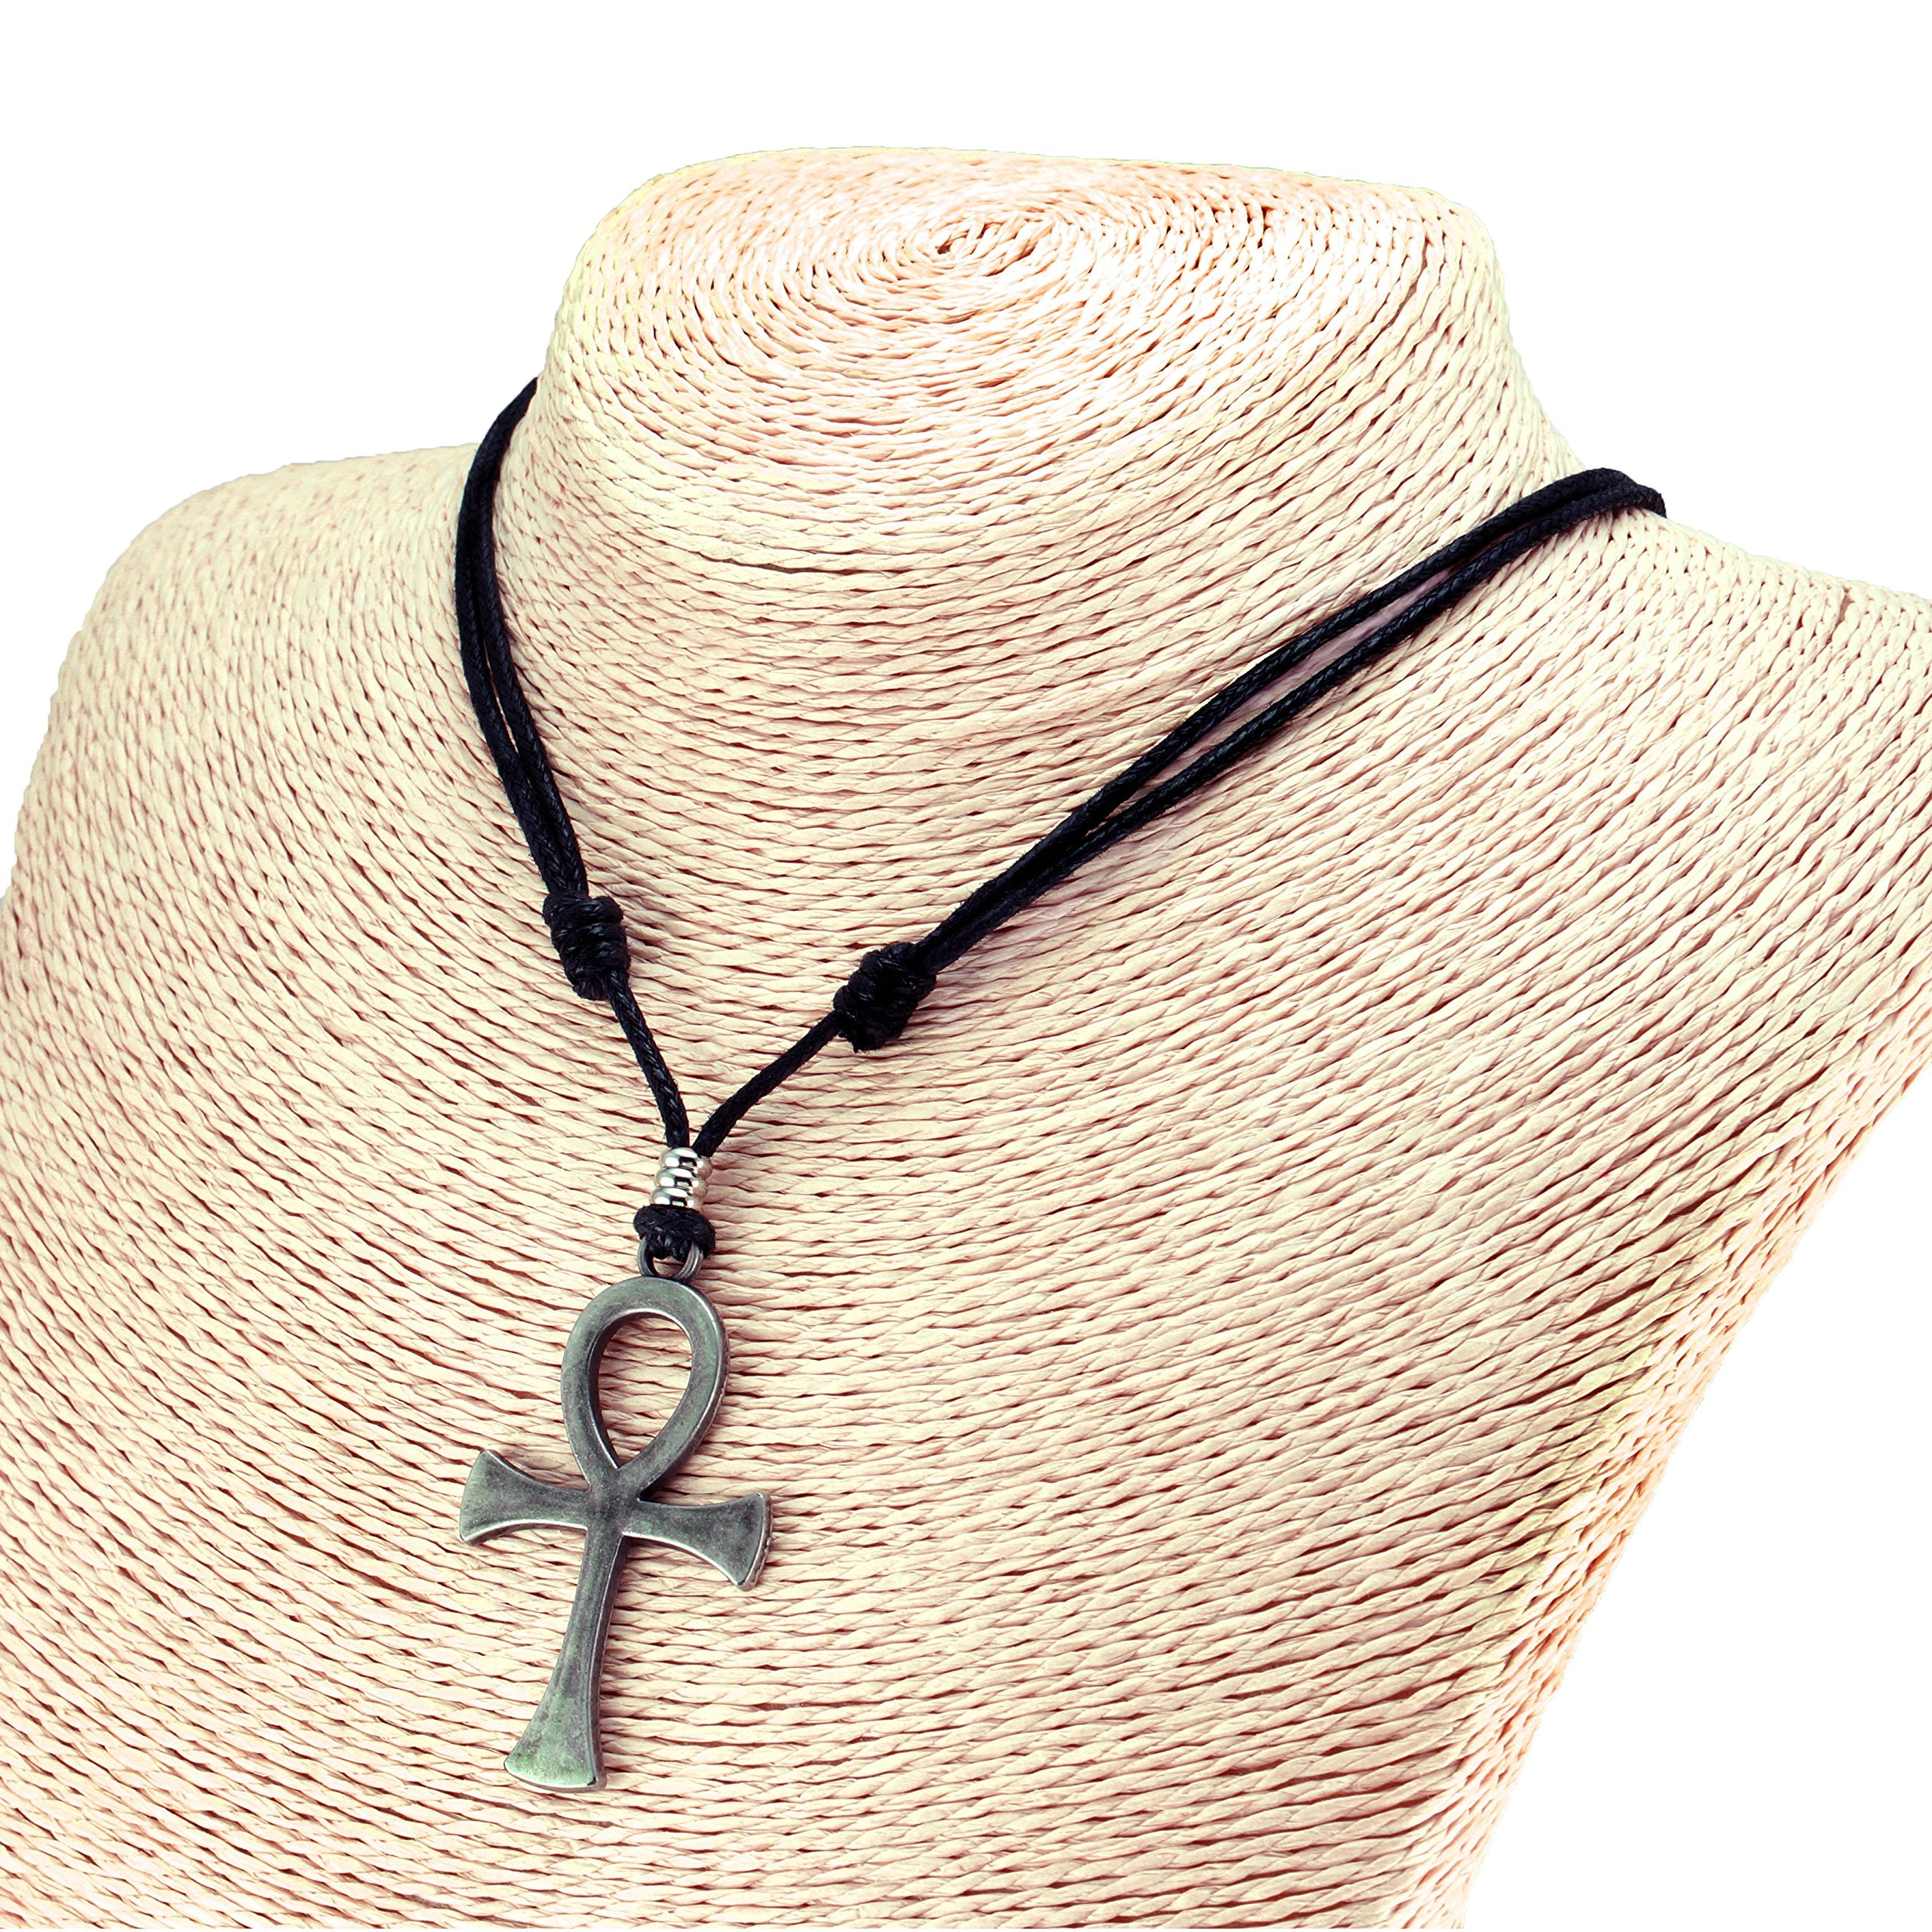 Ankh Cross Pendant on Adjustable Rope Necklace